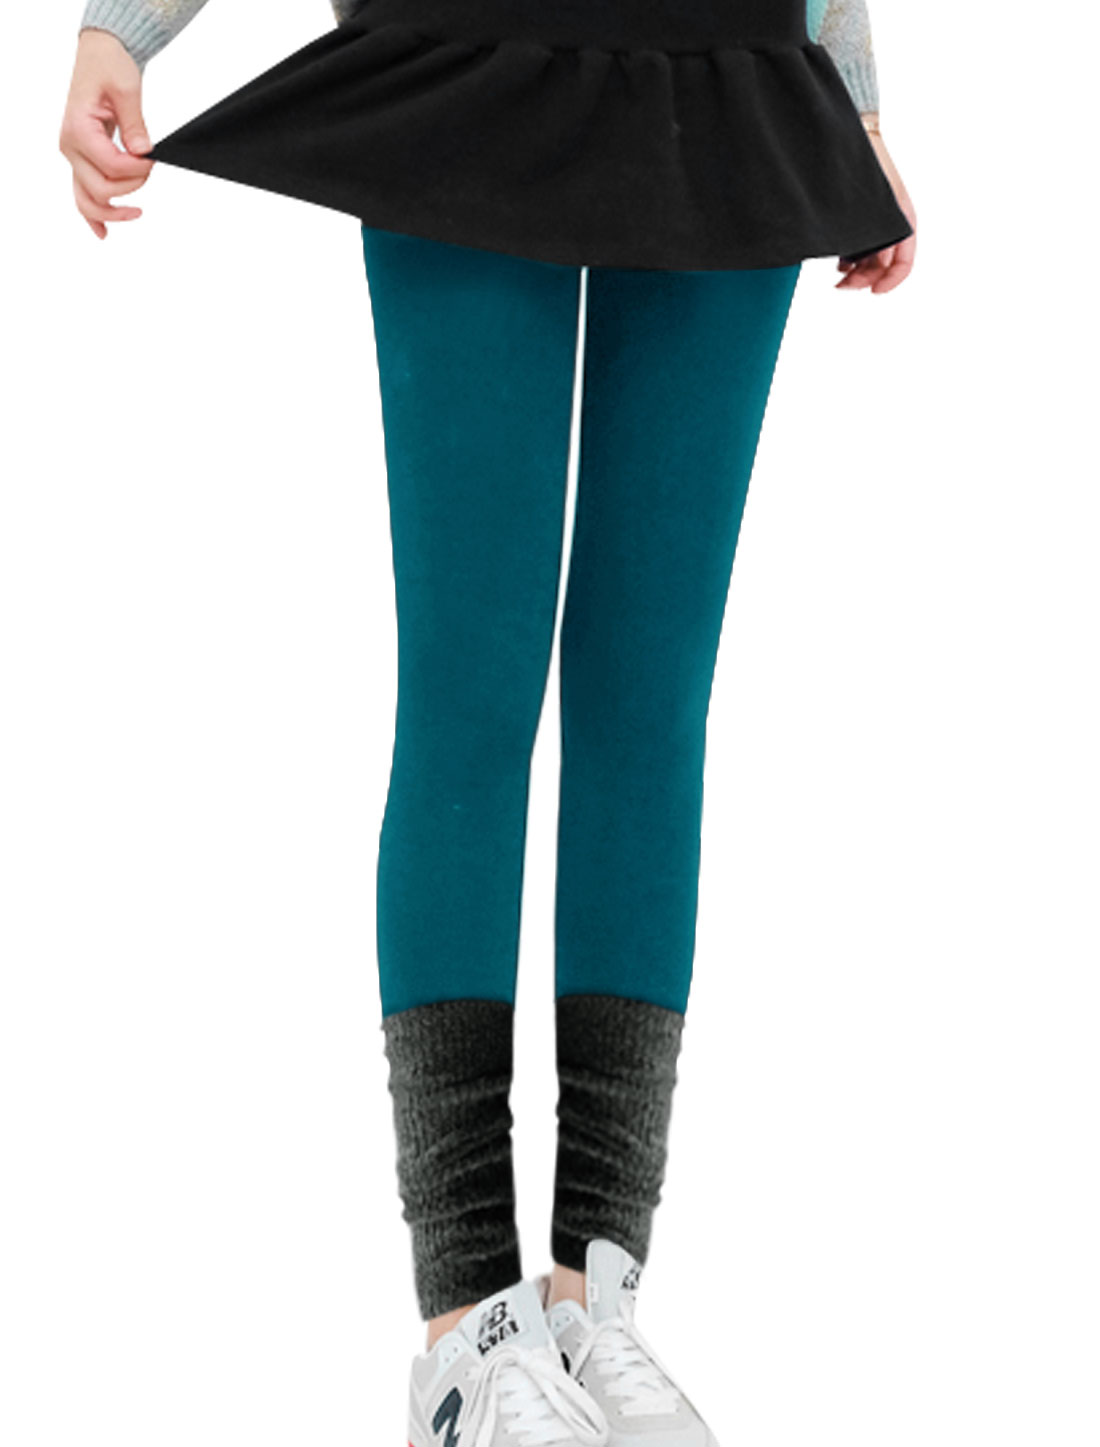 Color Block Heap Heap Cuffs Spliced Peacock Blue Leggings for Woman XS